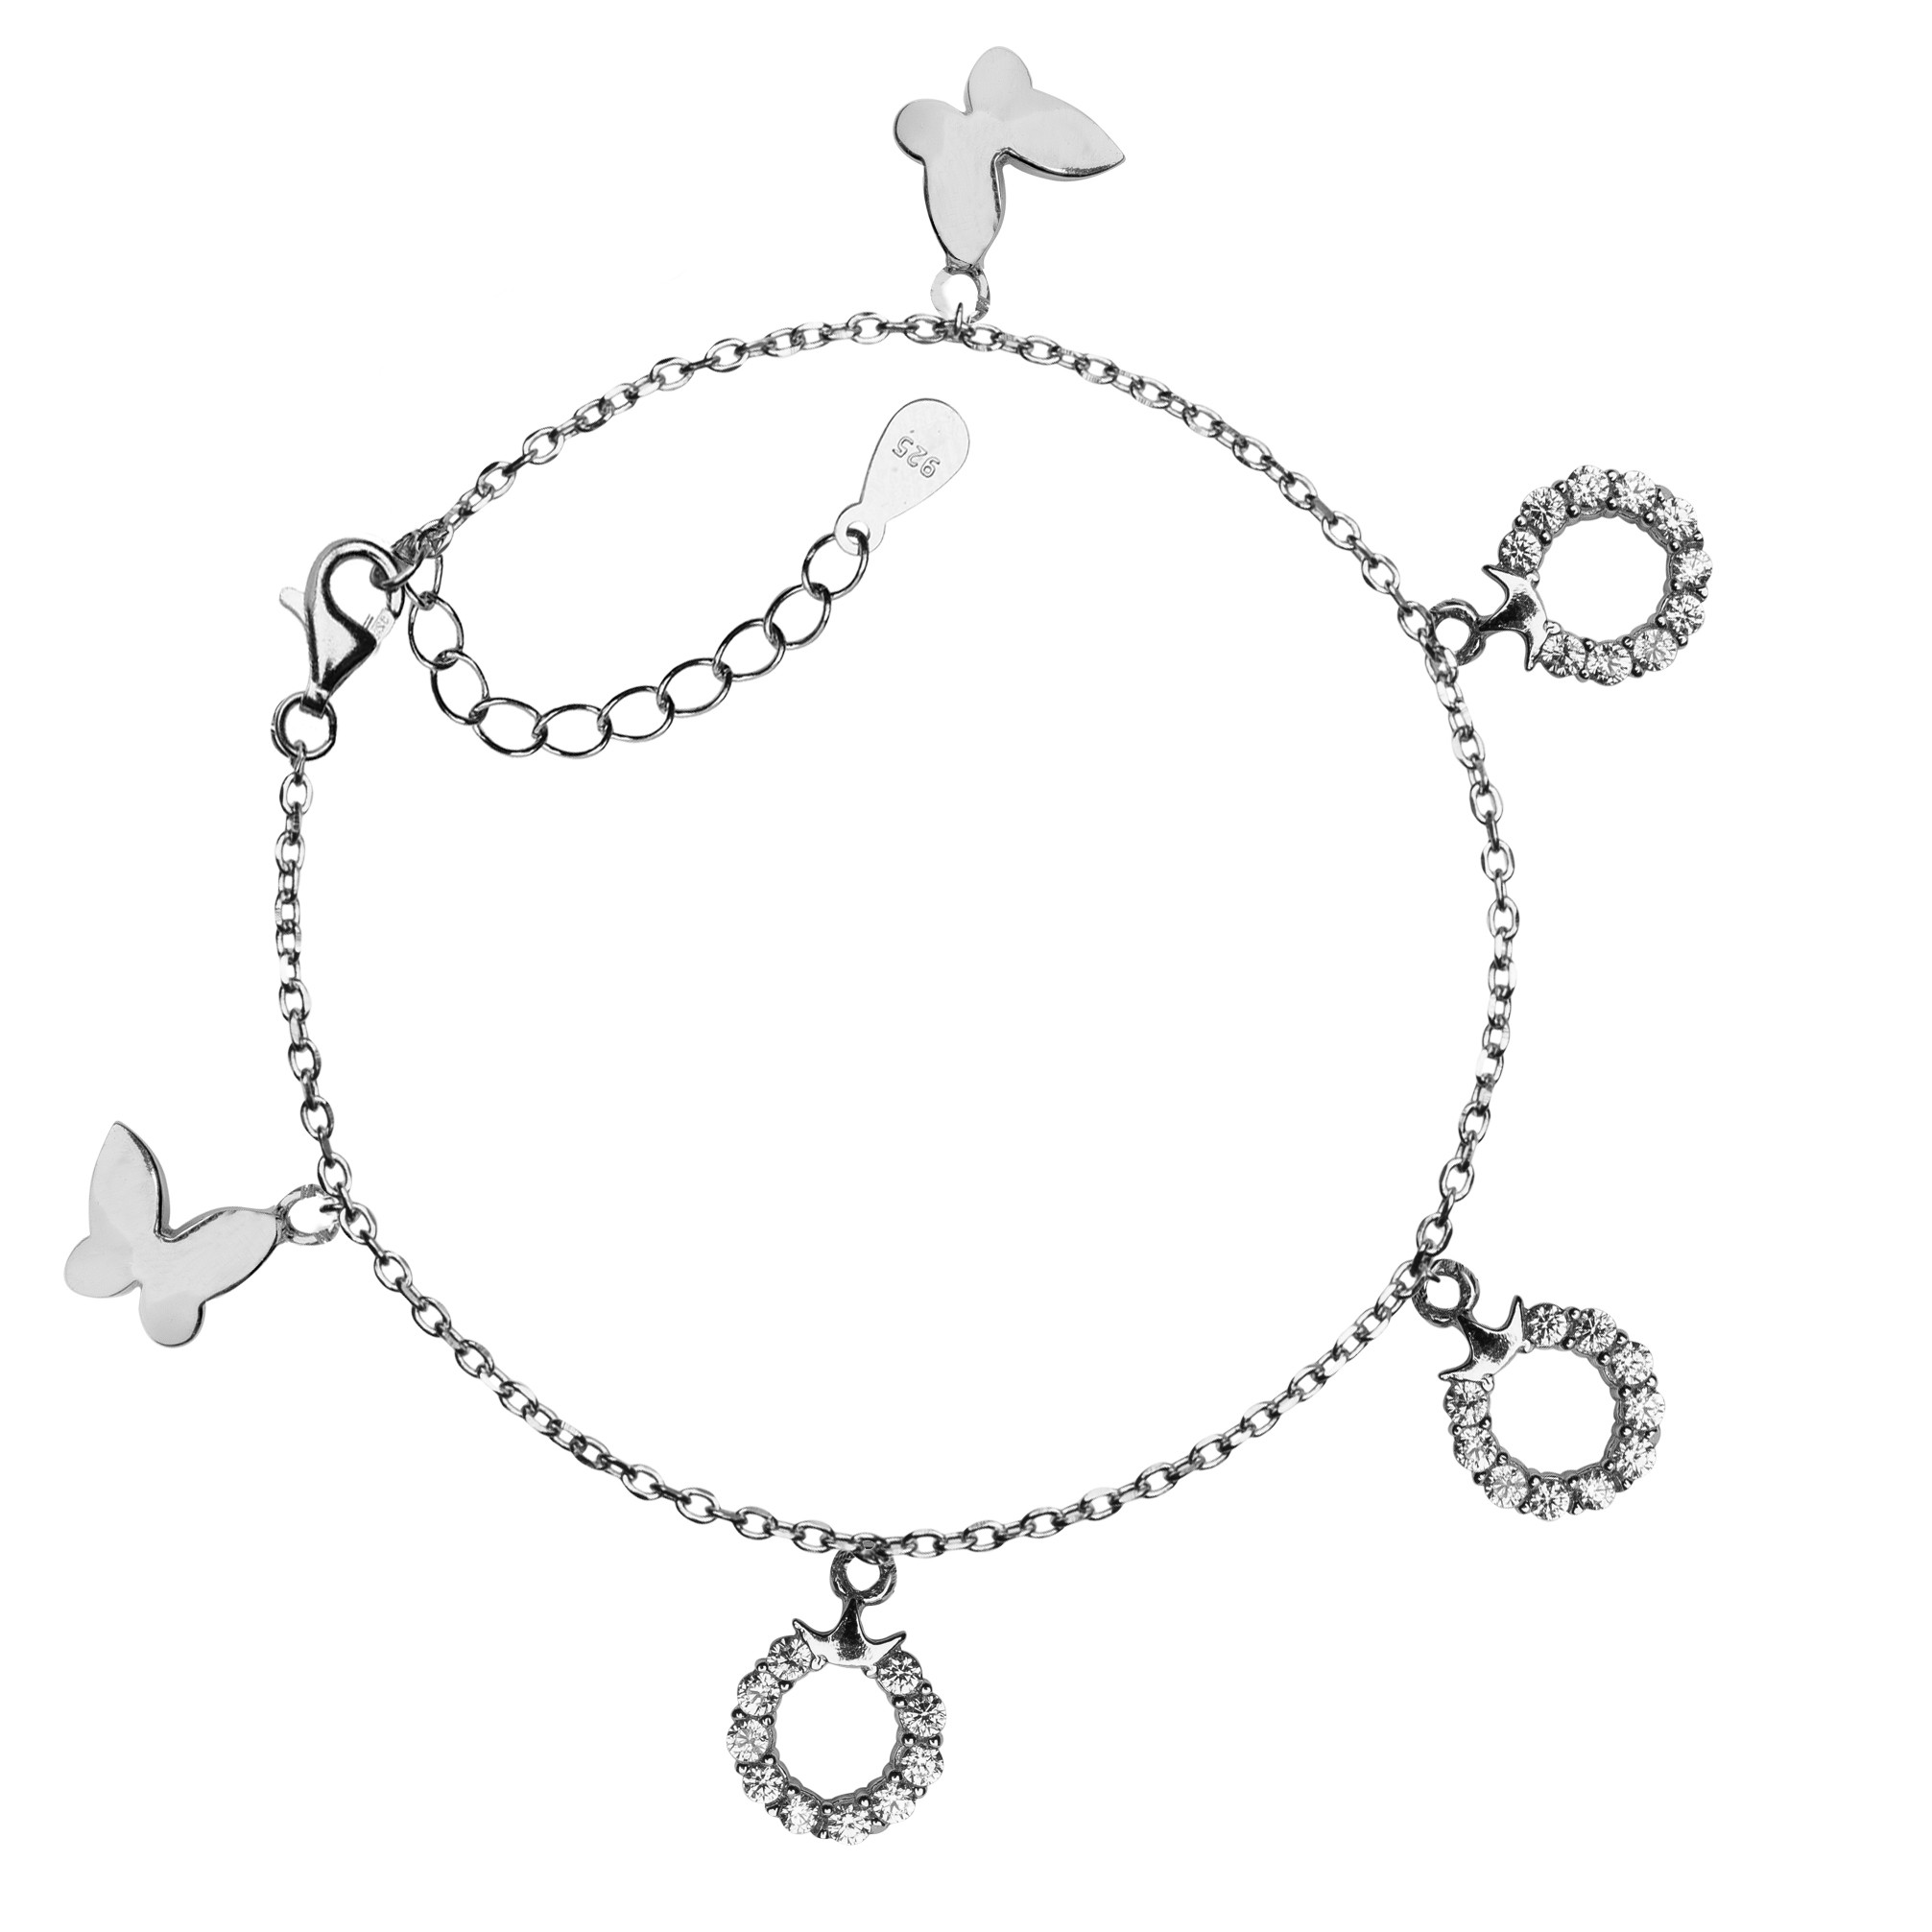 BRACELET WITH CHARMS AND CRYSTALS MODEL  A006